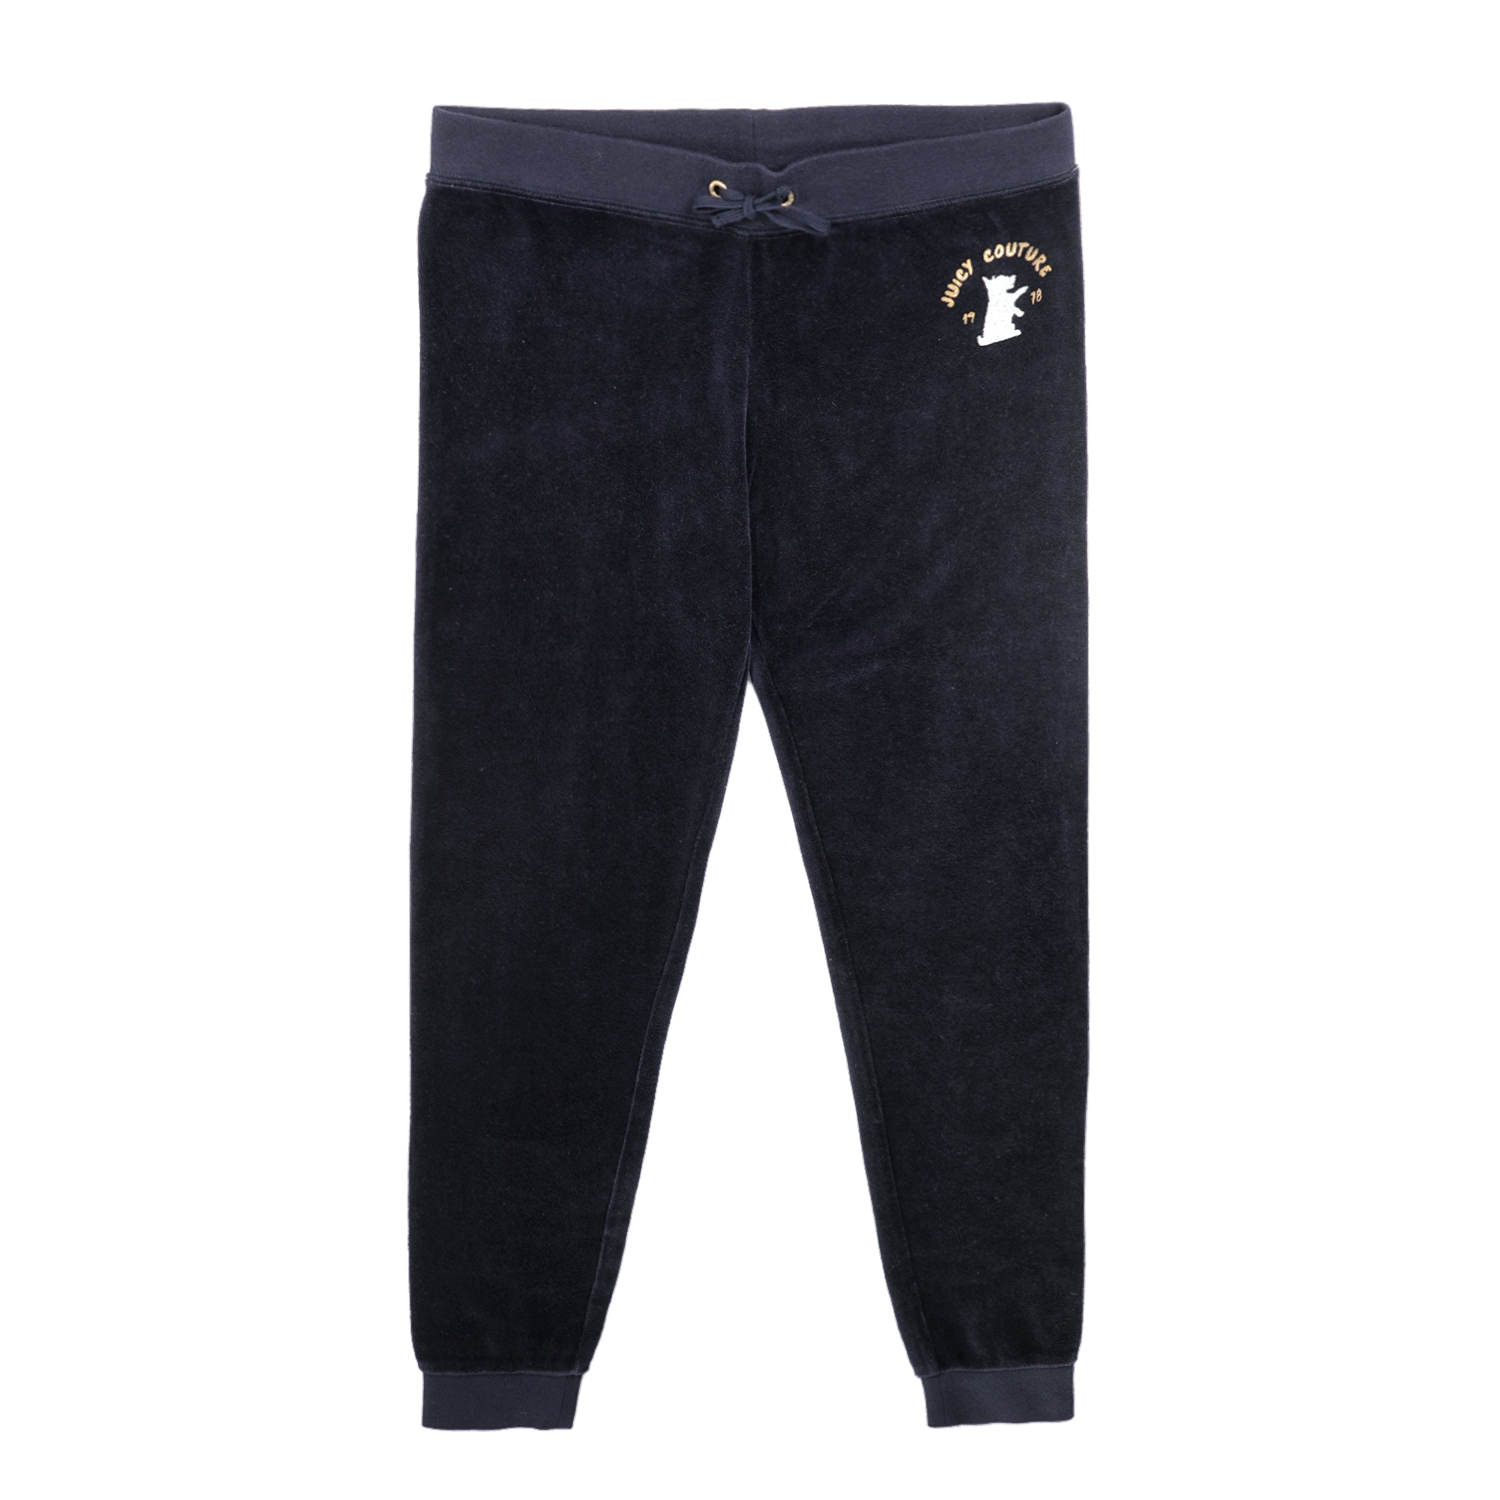 JUICY COUTURE KIDS - Κοριτσίστικο παντελόνι φόρμας JUICY COUTURE WORLD FAMOUS ZU παιδικά girls ρούχα παντελόνια